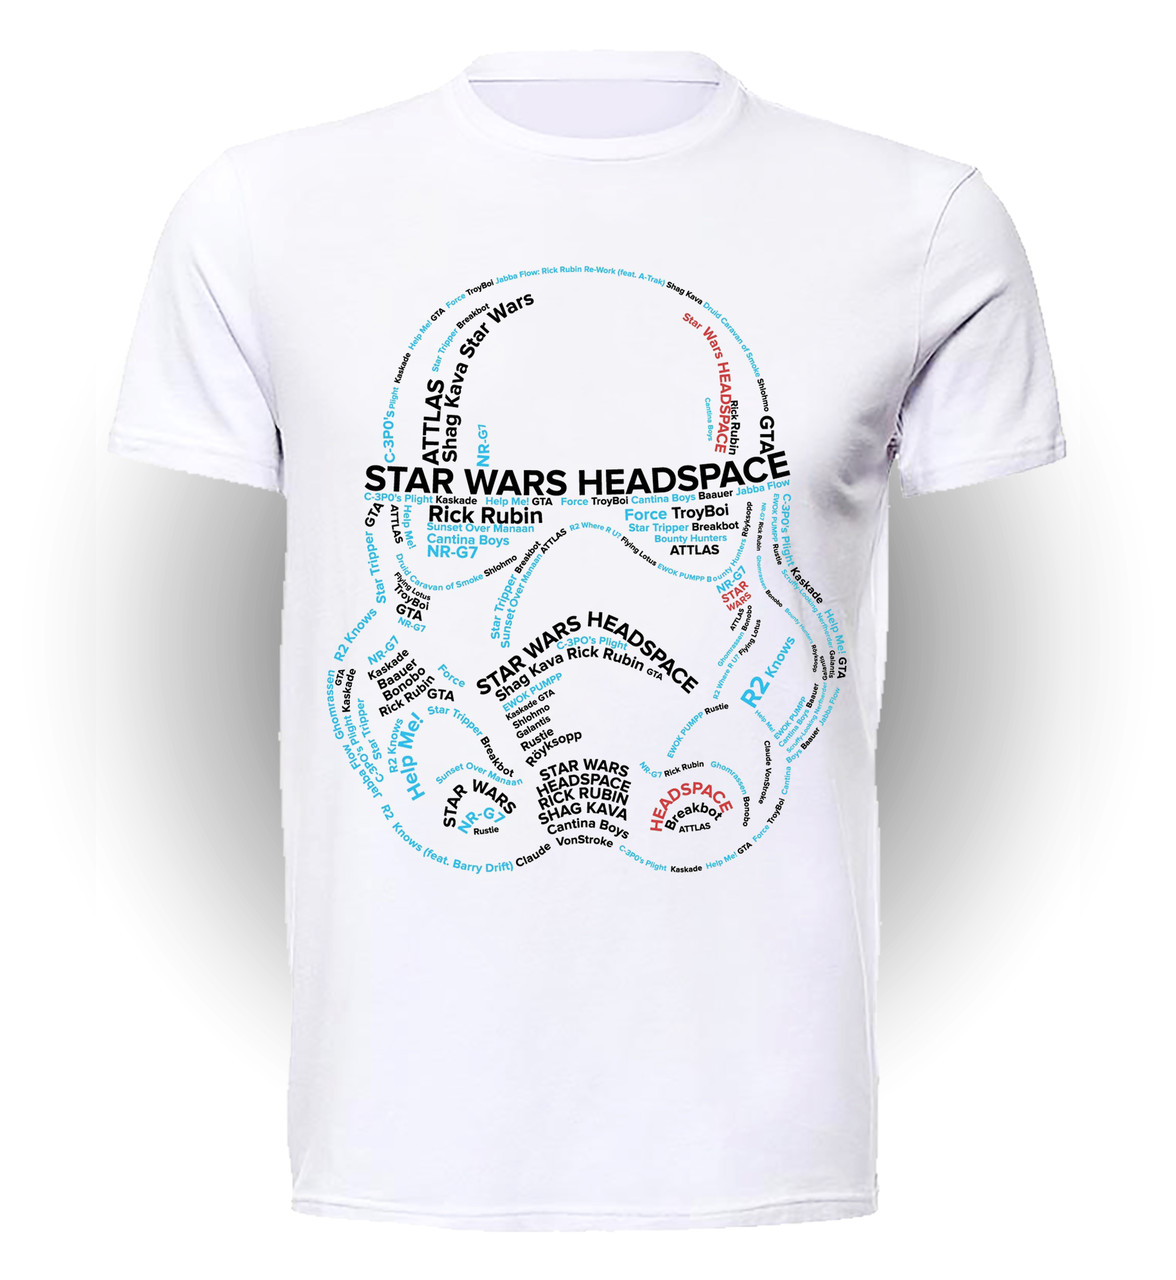 Футболка GeekLand Звёздные войны Star Wars headspace SW.01.070